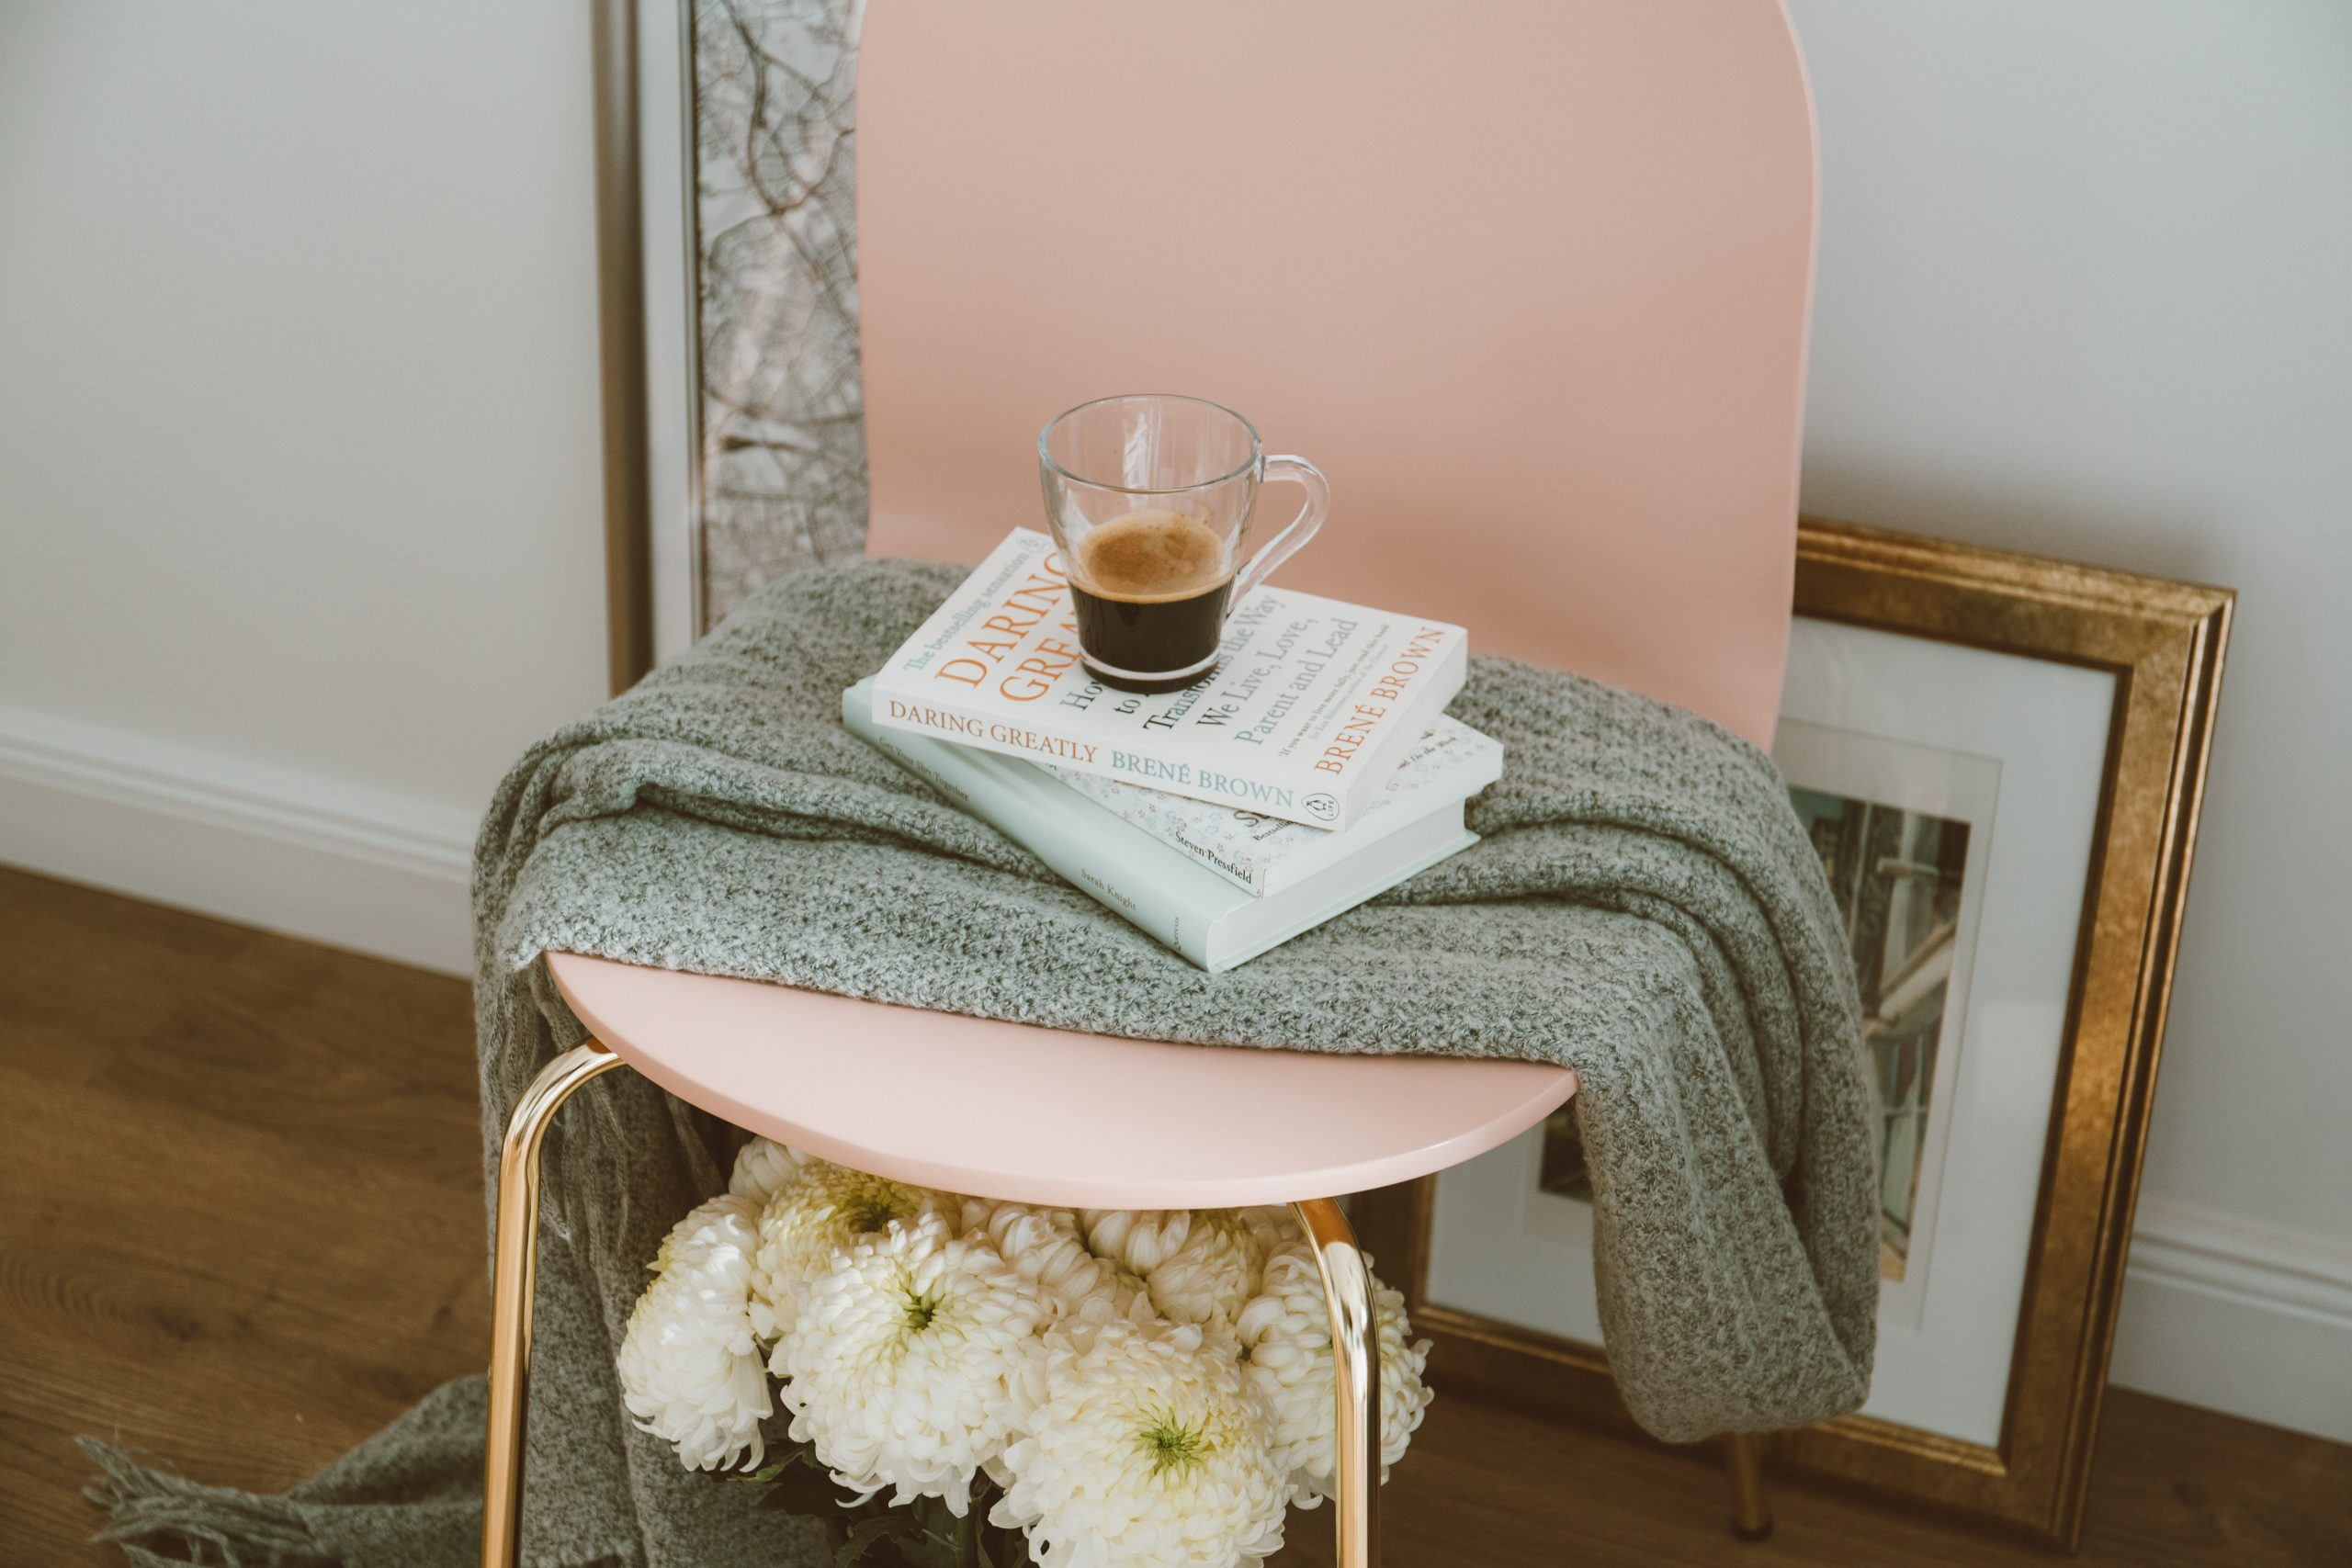 Practice Self-Care: Pink chair with throw, book and cup of coffee.